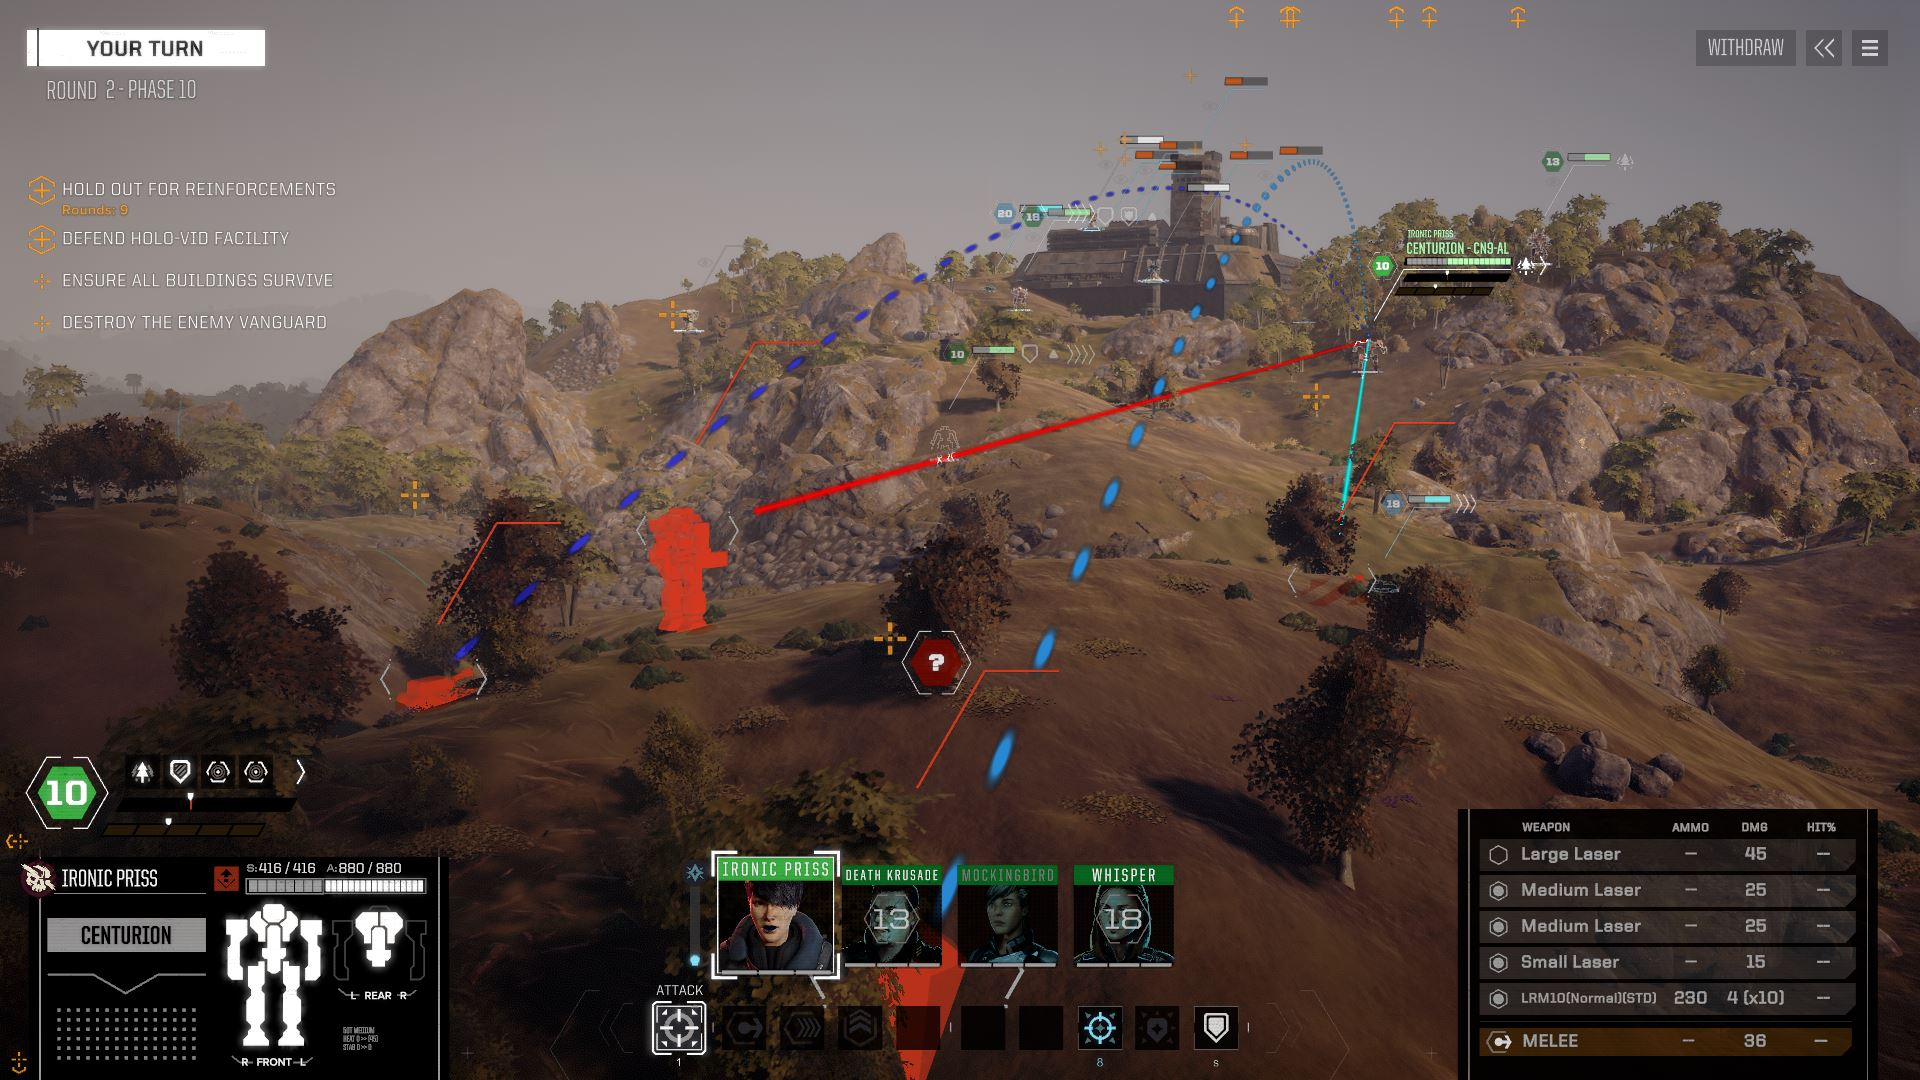 Just because your fragile human eyes can't see something in RogueTech, it doesn't mean you can't shoot at it